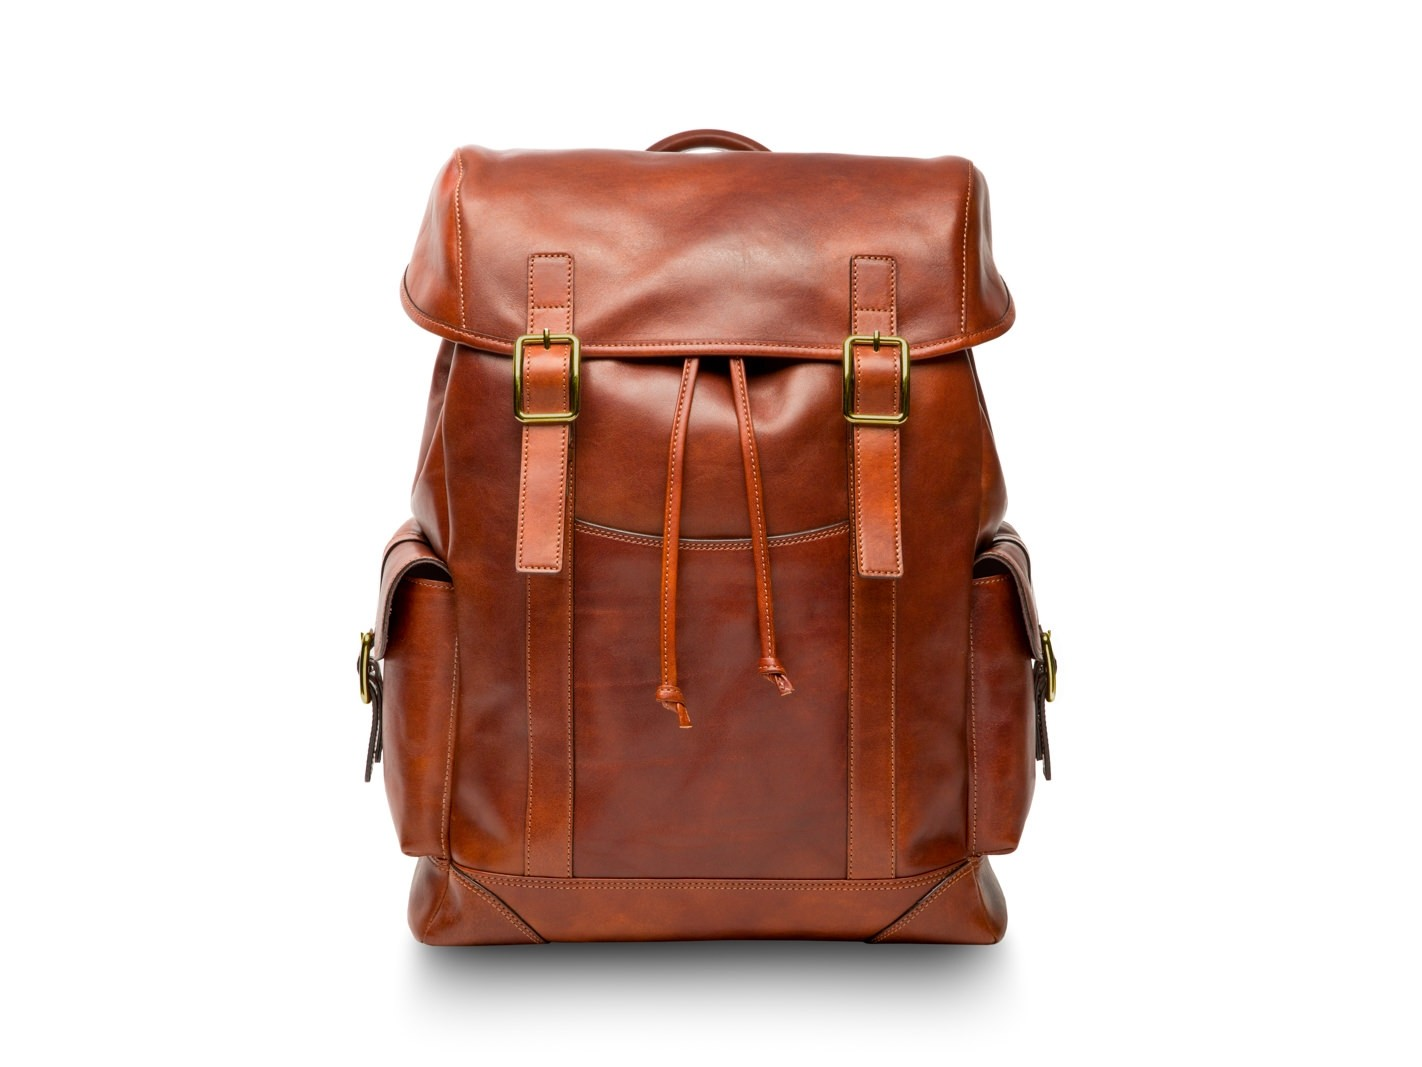 Pathfinder All Leather Backpack